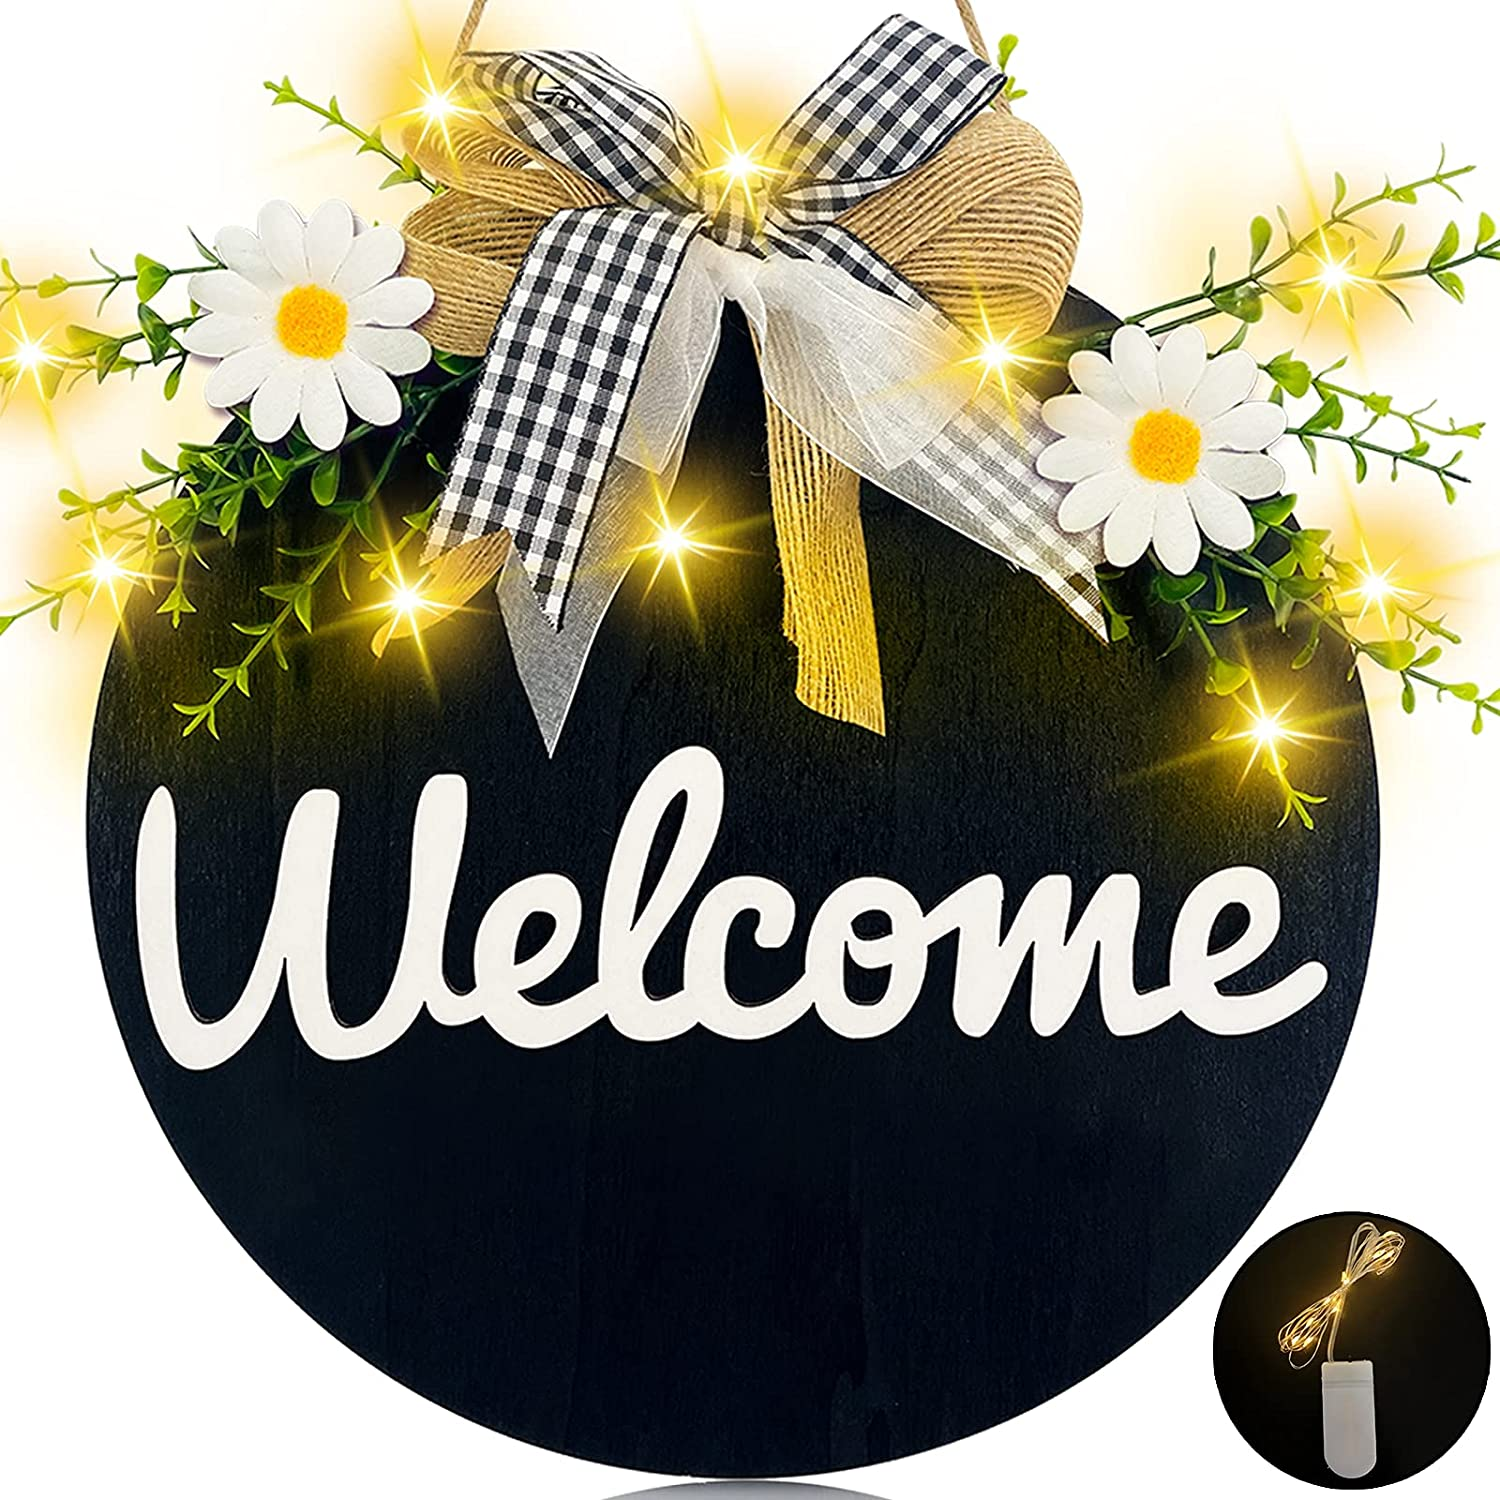 TURNMEON Lighted Welcome Wreath Sign with Lights Front Door Porch Decor,Rustic Round Wooden Hanging Hello Sign Daisy Eucalyptus Outdoor Home Wall Farmhouse Porch Summer Decor Housewarming Gift (Black)